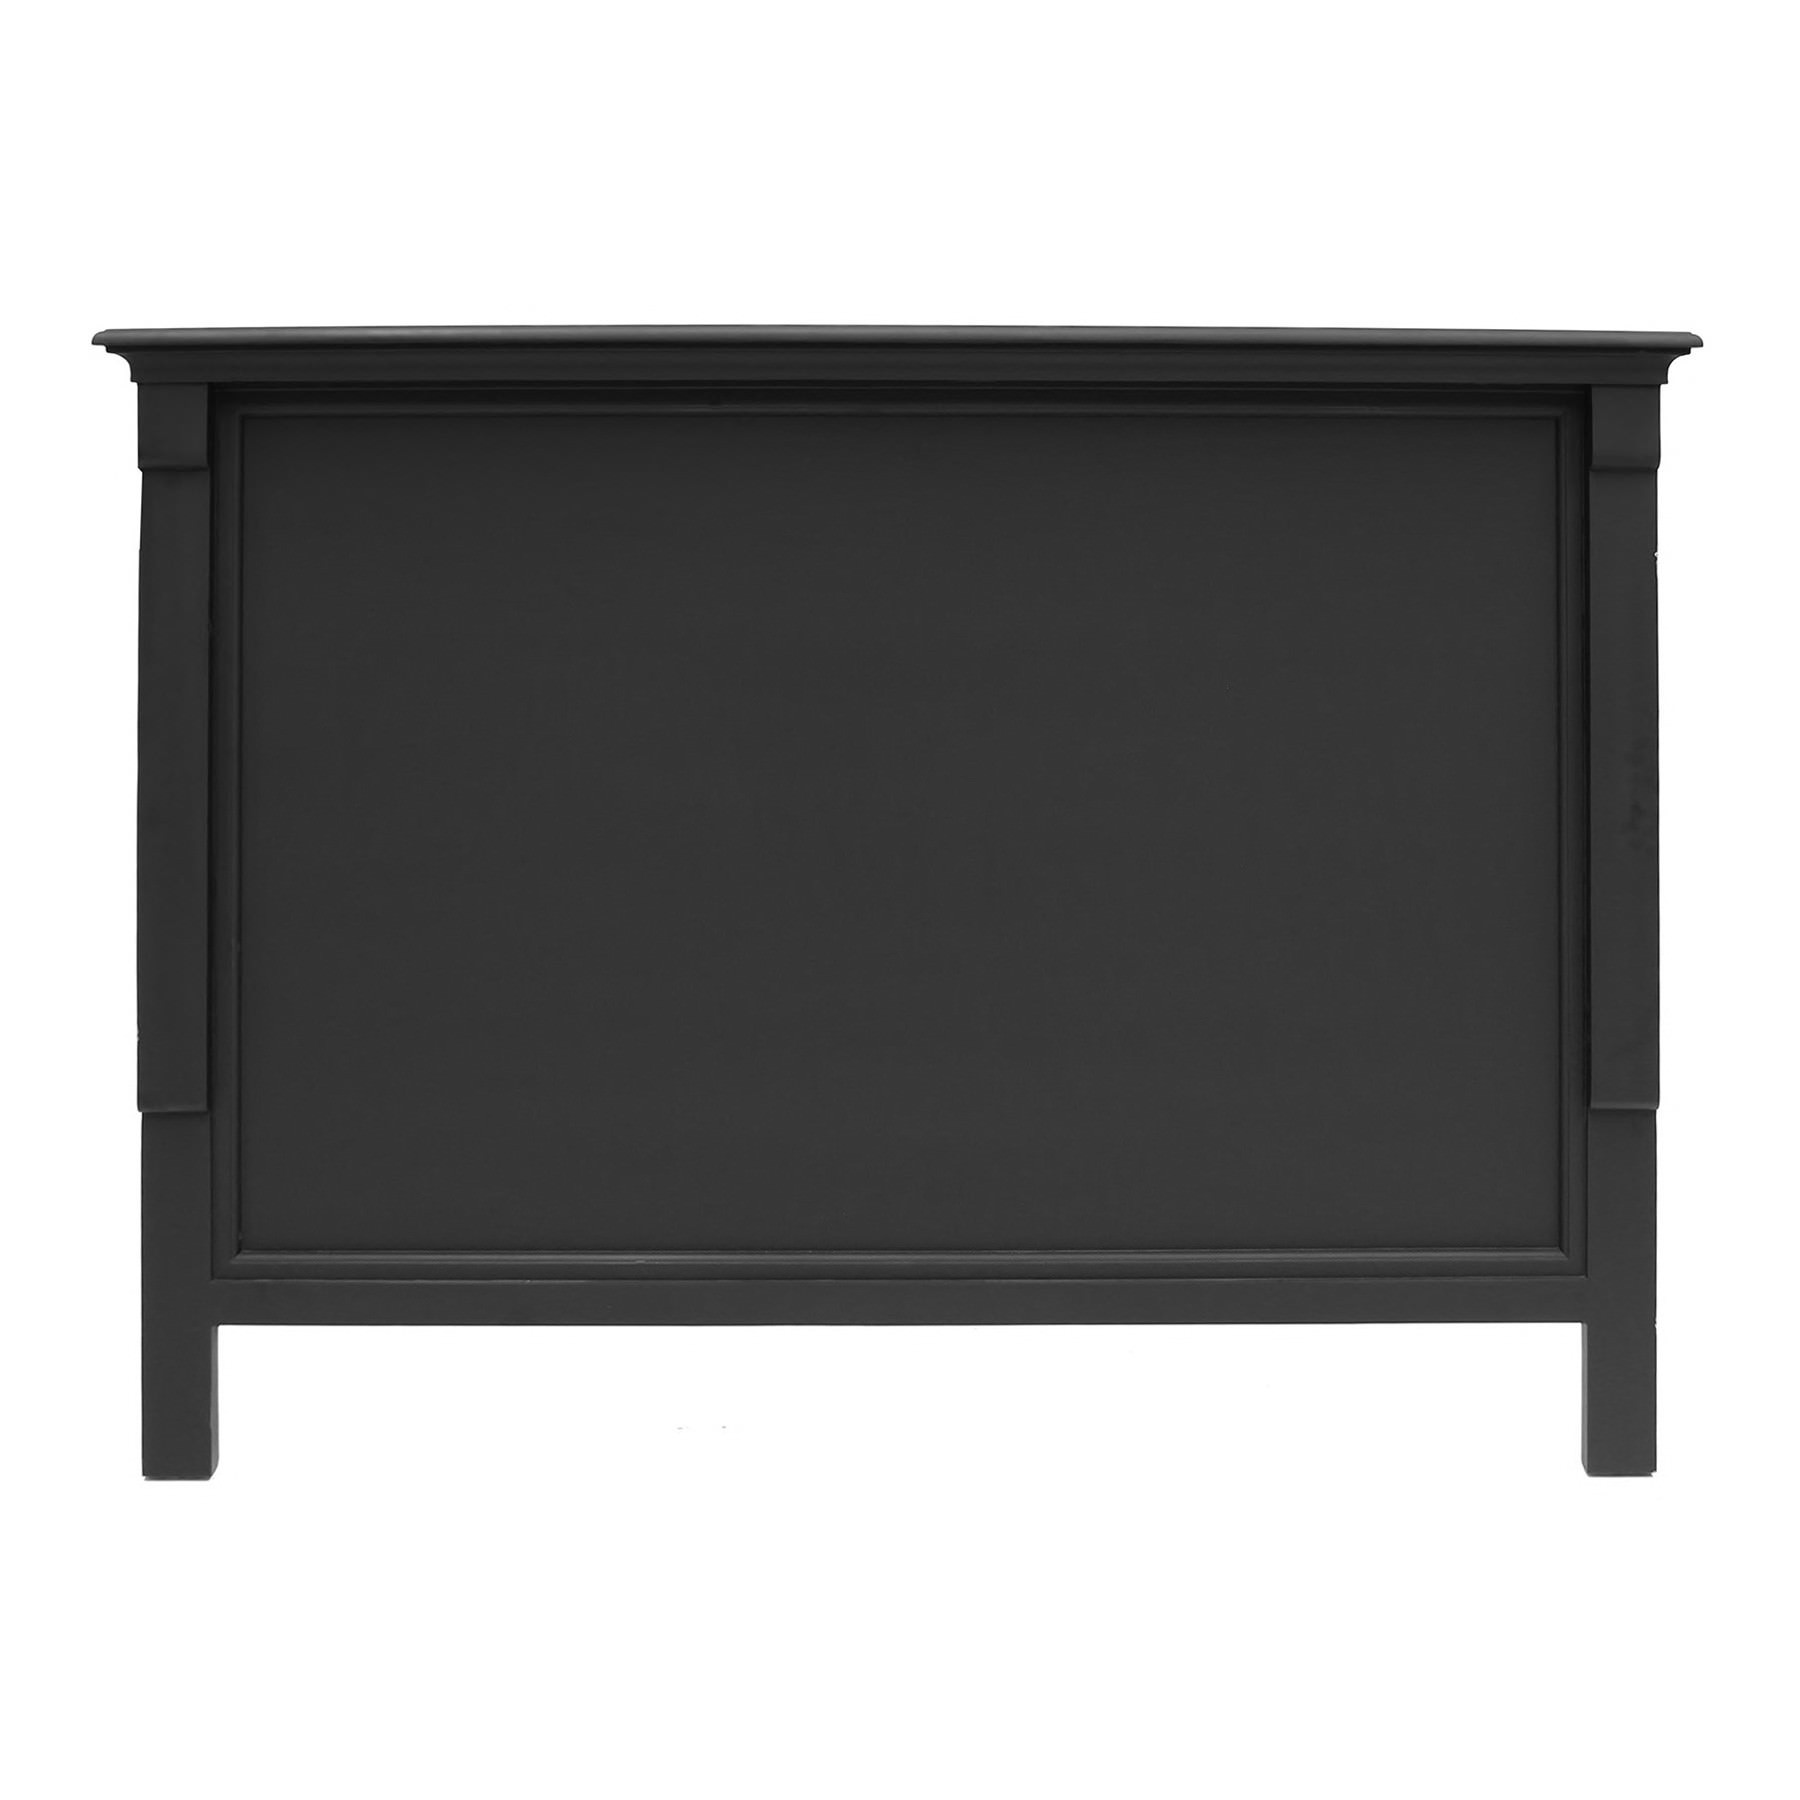 Belley Hand Crafted Mahogany Timber Bed Headboard, King, Black